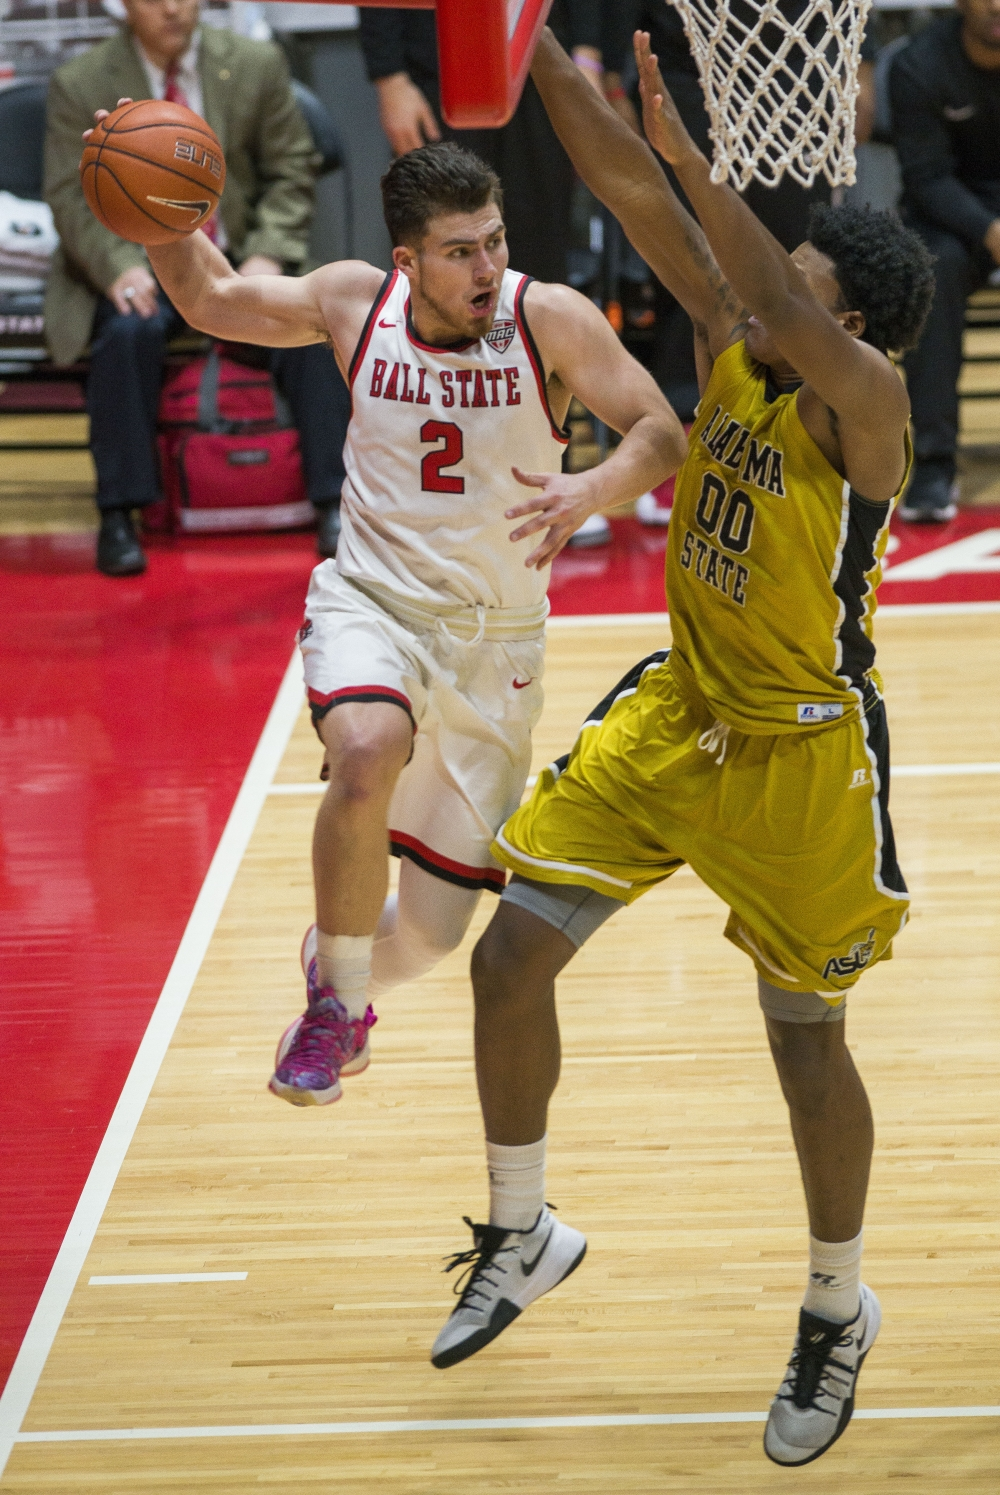 PREVIEW: Ball State men's basketball vs. Toledo